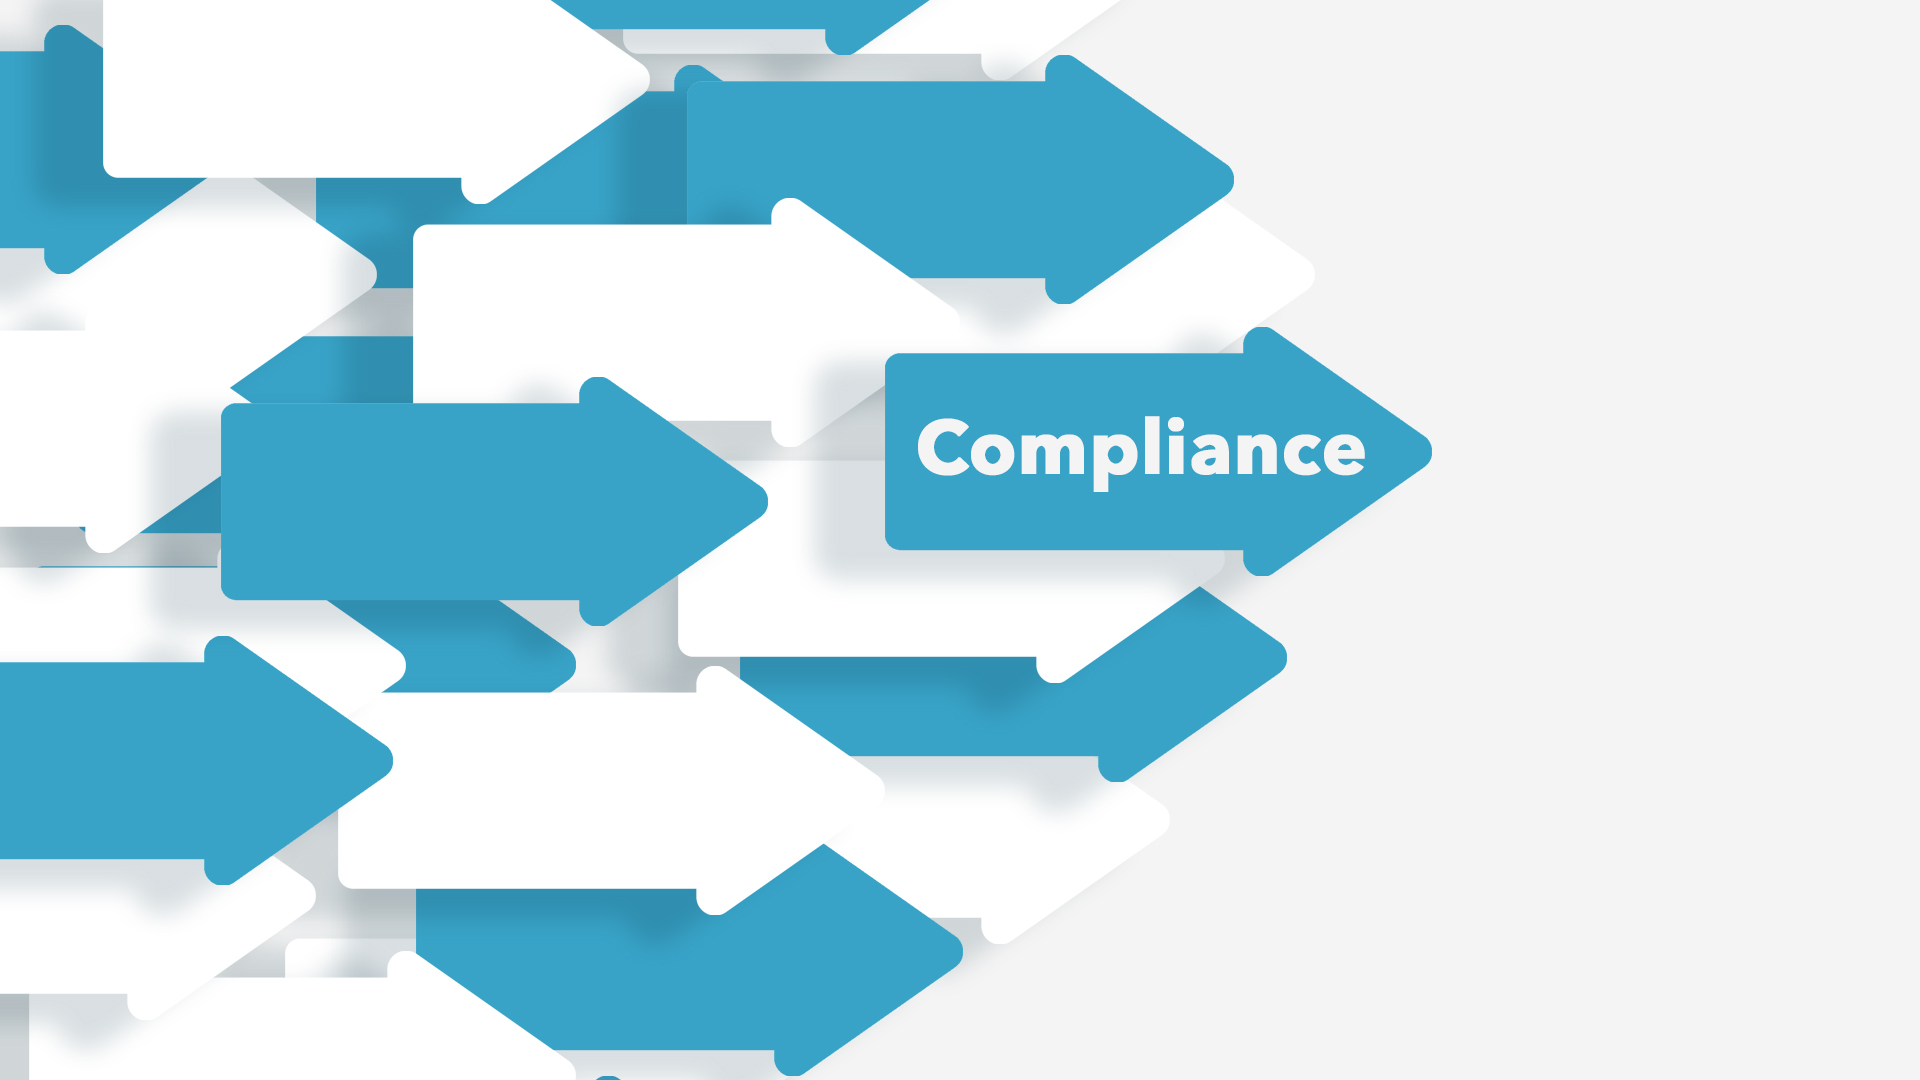 Compliance Arrows